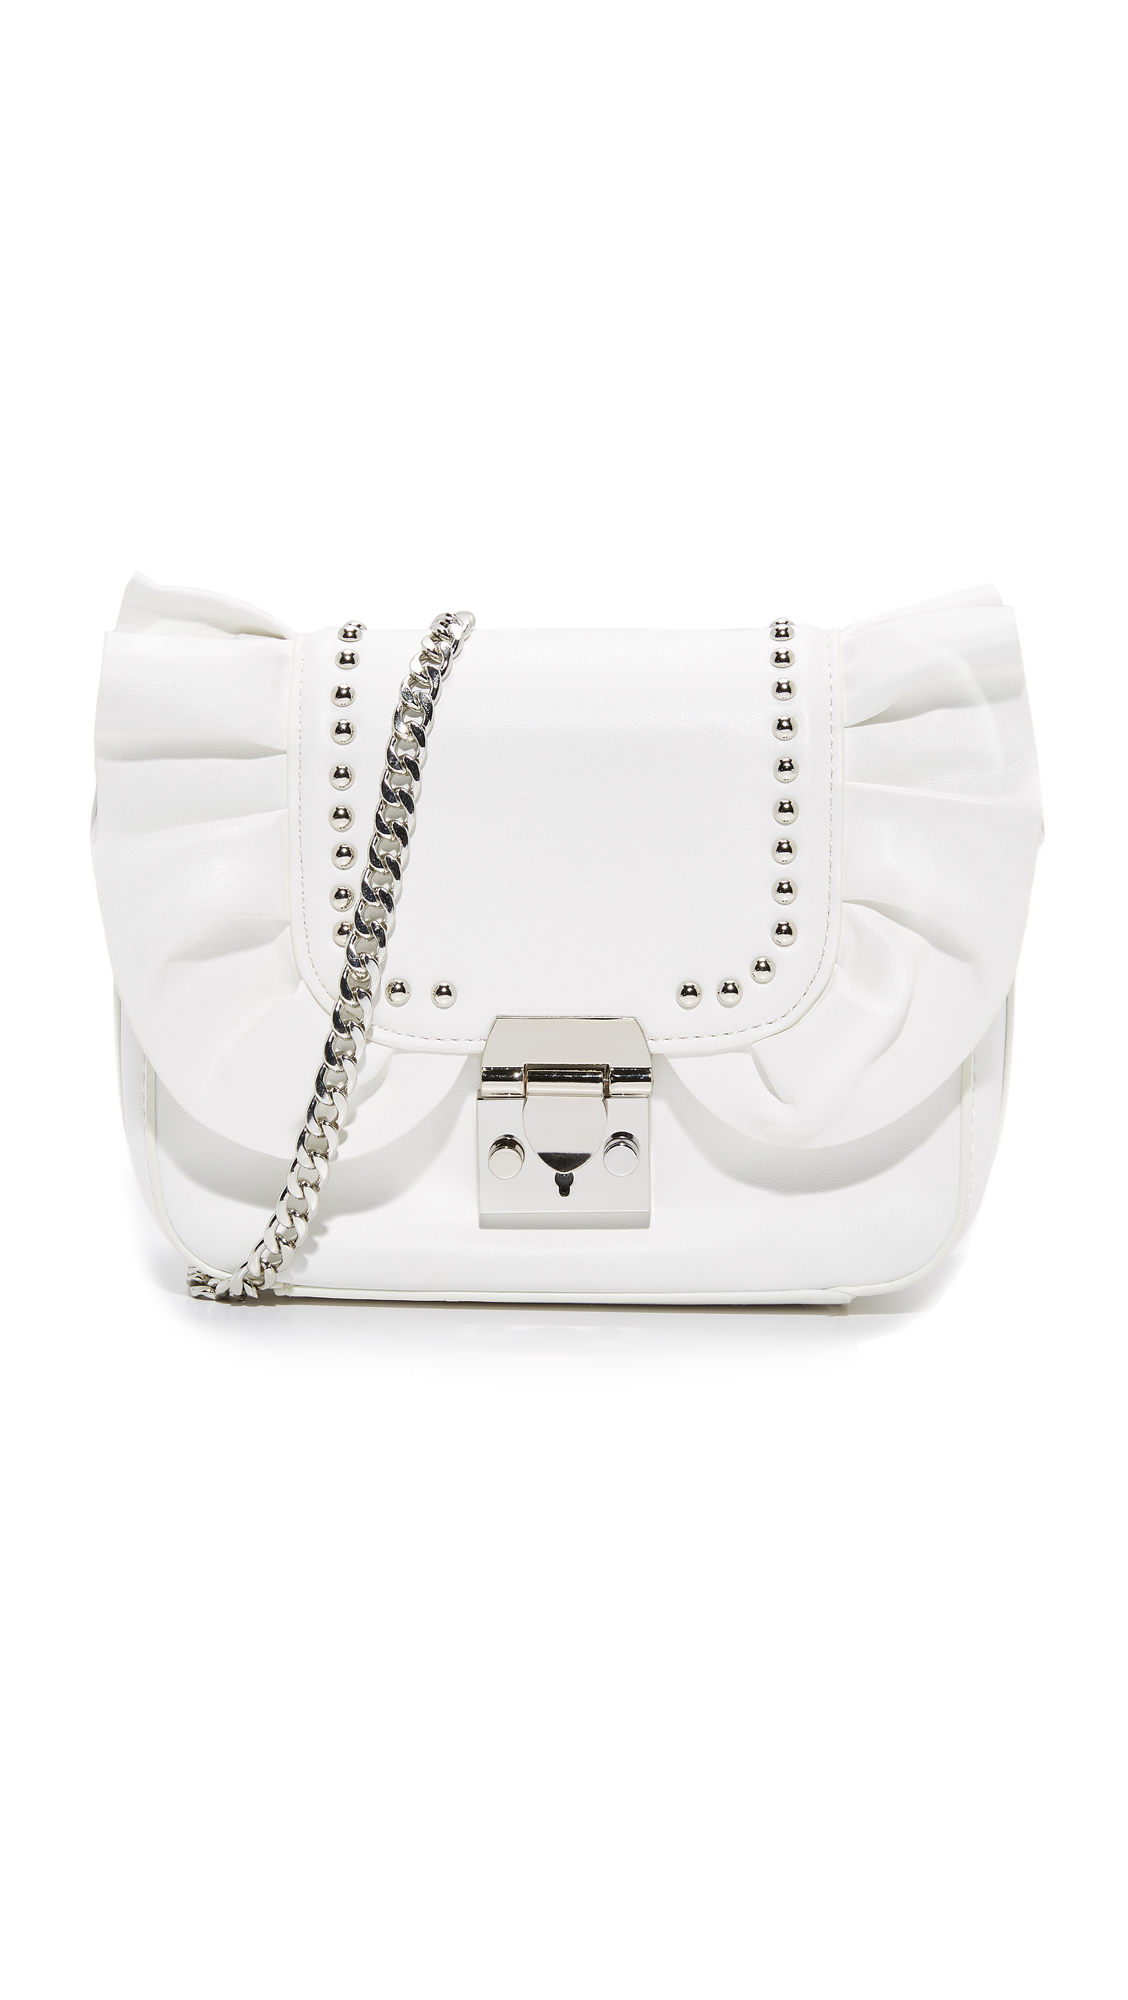 Studio 33 Damn Gina Ruffle Cross Body Bag - White